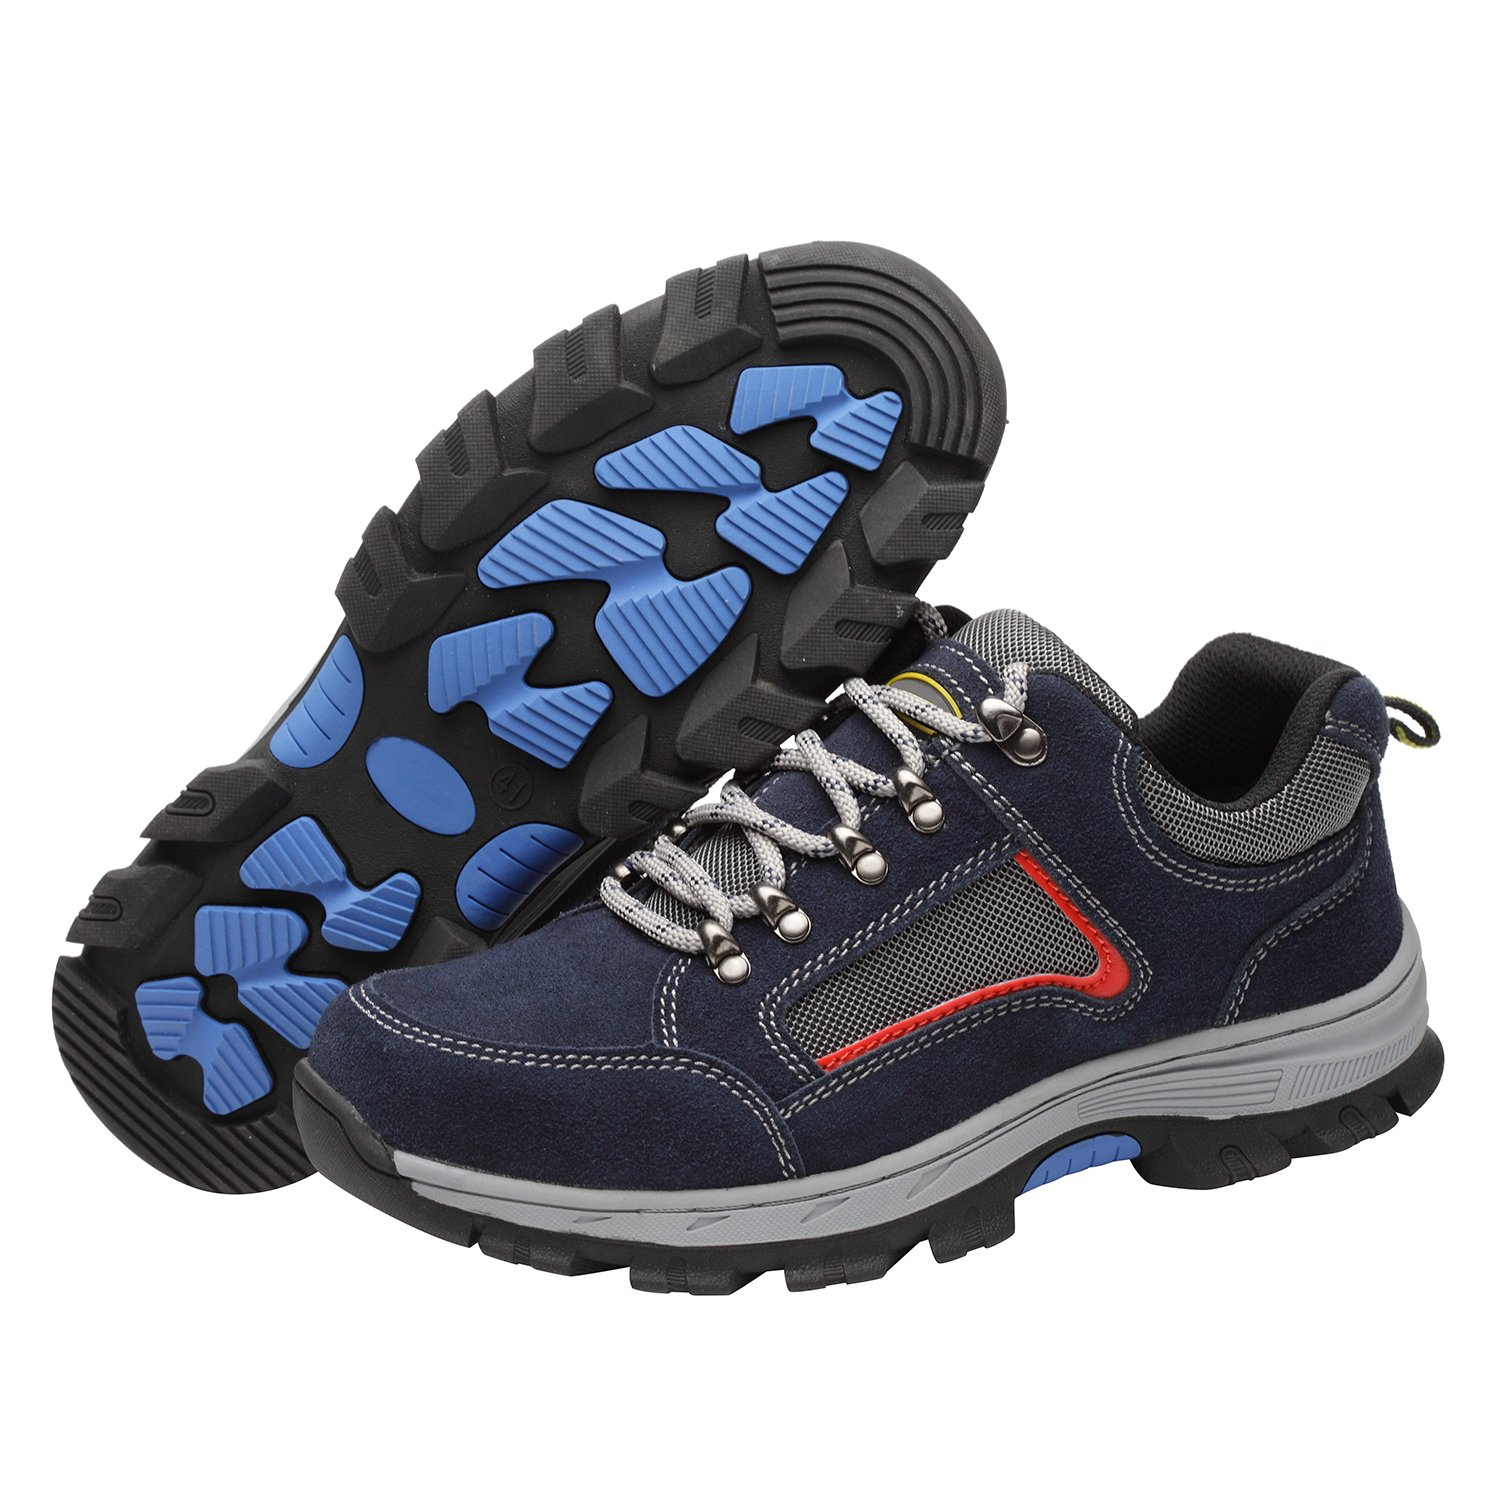 Optimal Women's Safety Shoes Work Shoes Protect Toe Shoes by Optimal Product (Image #8)